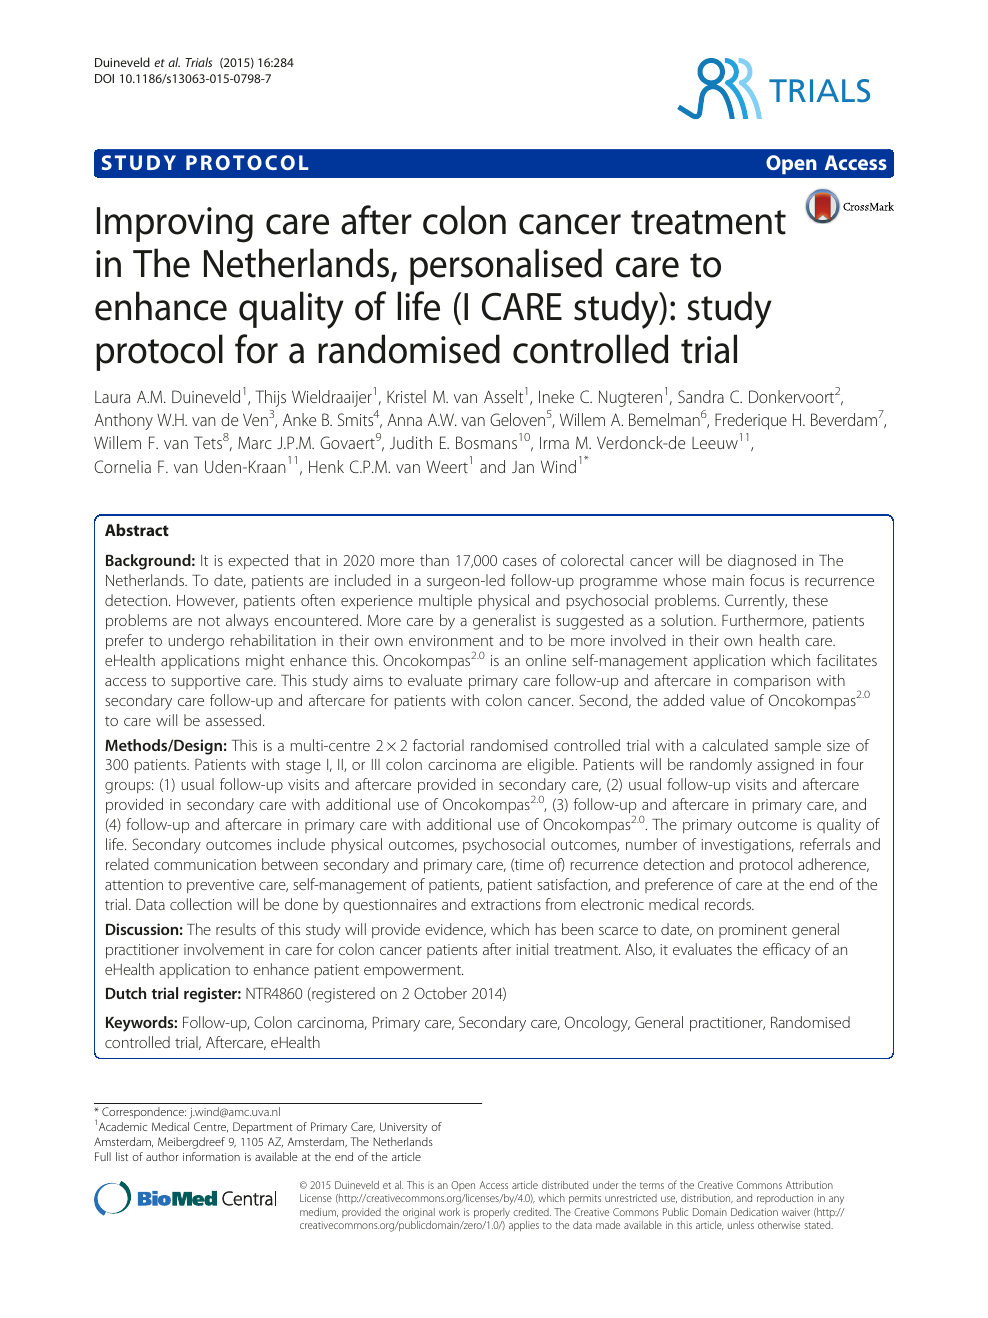 Improving Care After Colon Cancer Treatment In The Netherlands Personalised Care To Enhance Quality Of Life I Care Study Study Protocol For A Randomised Controlled Trial Topic Of Research Paper In